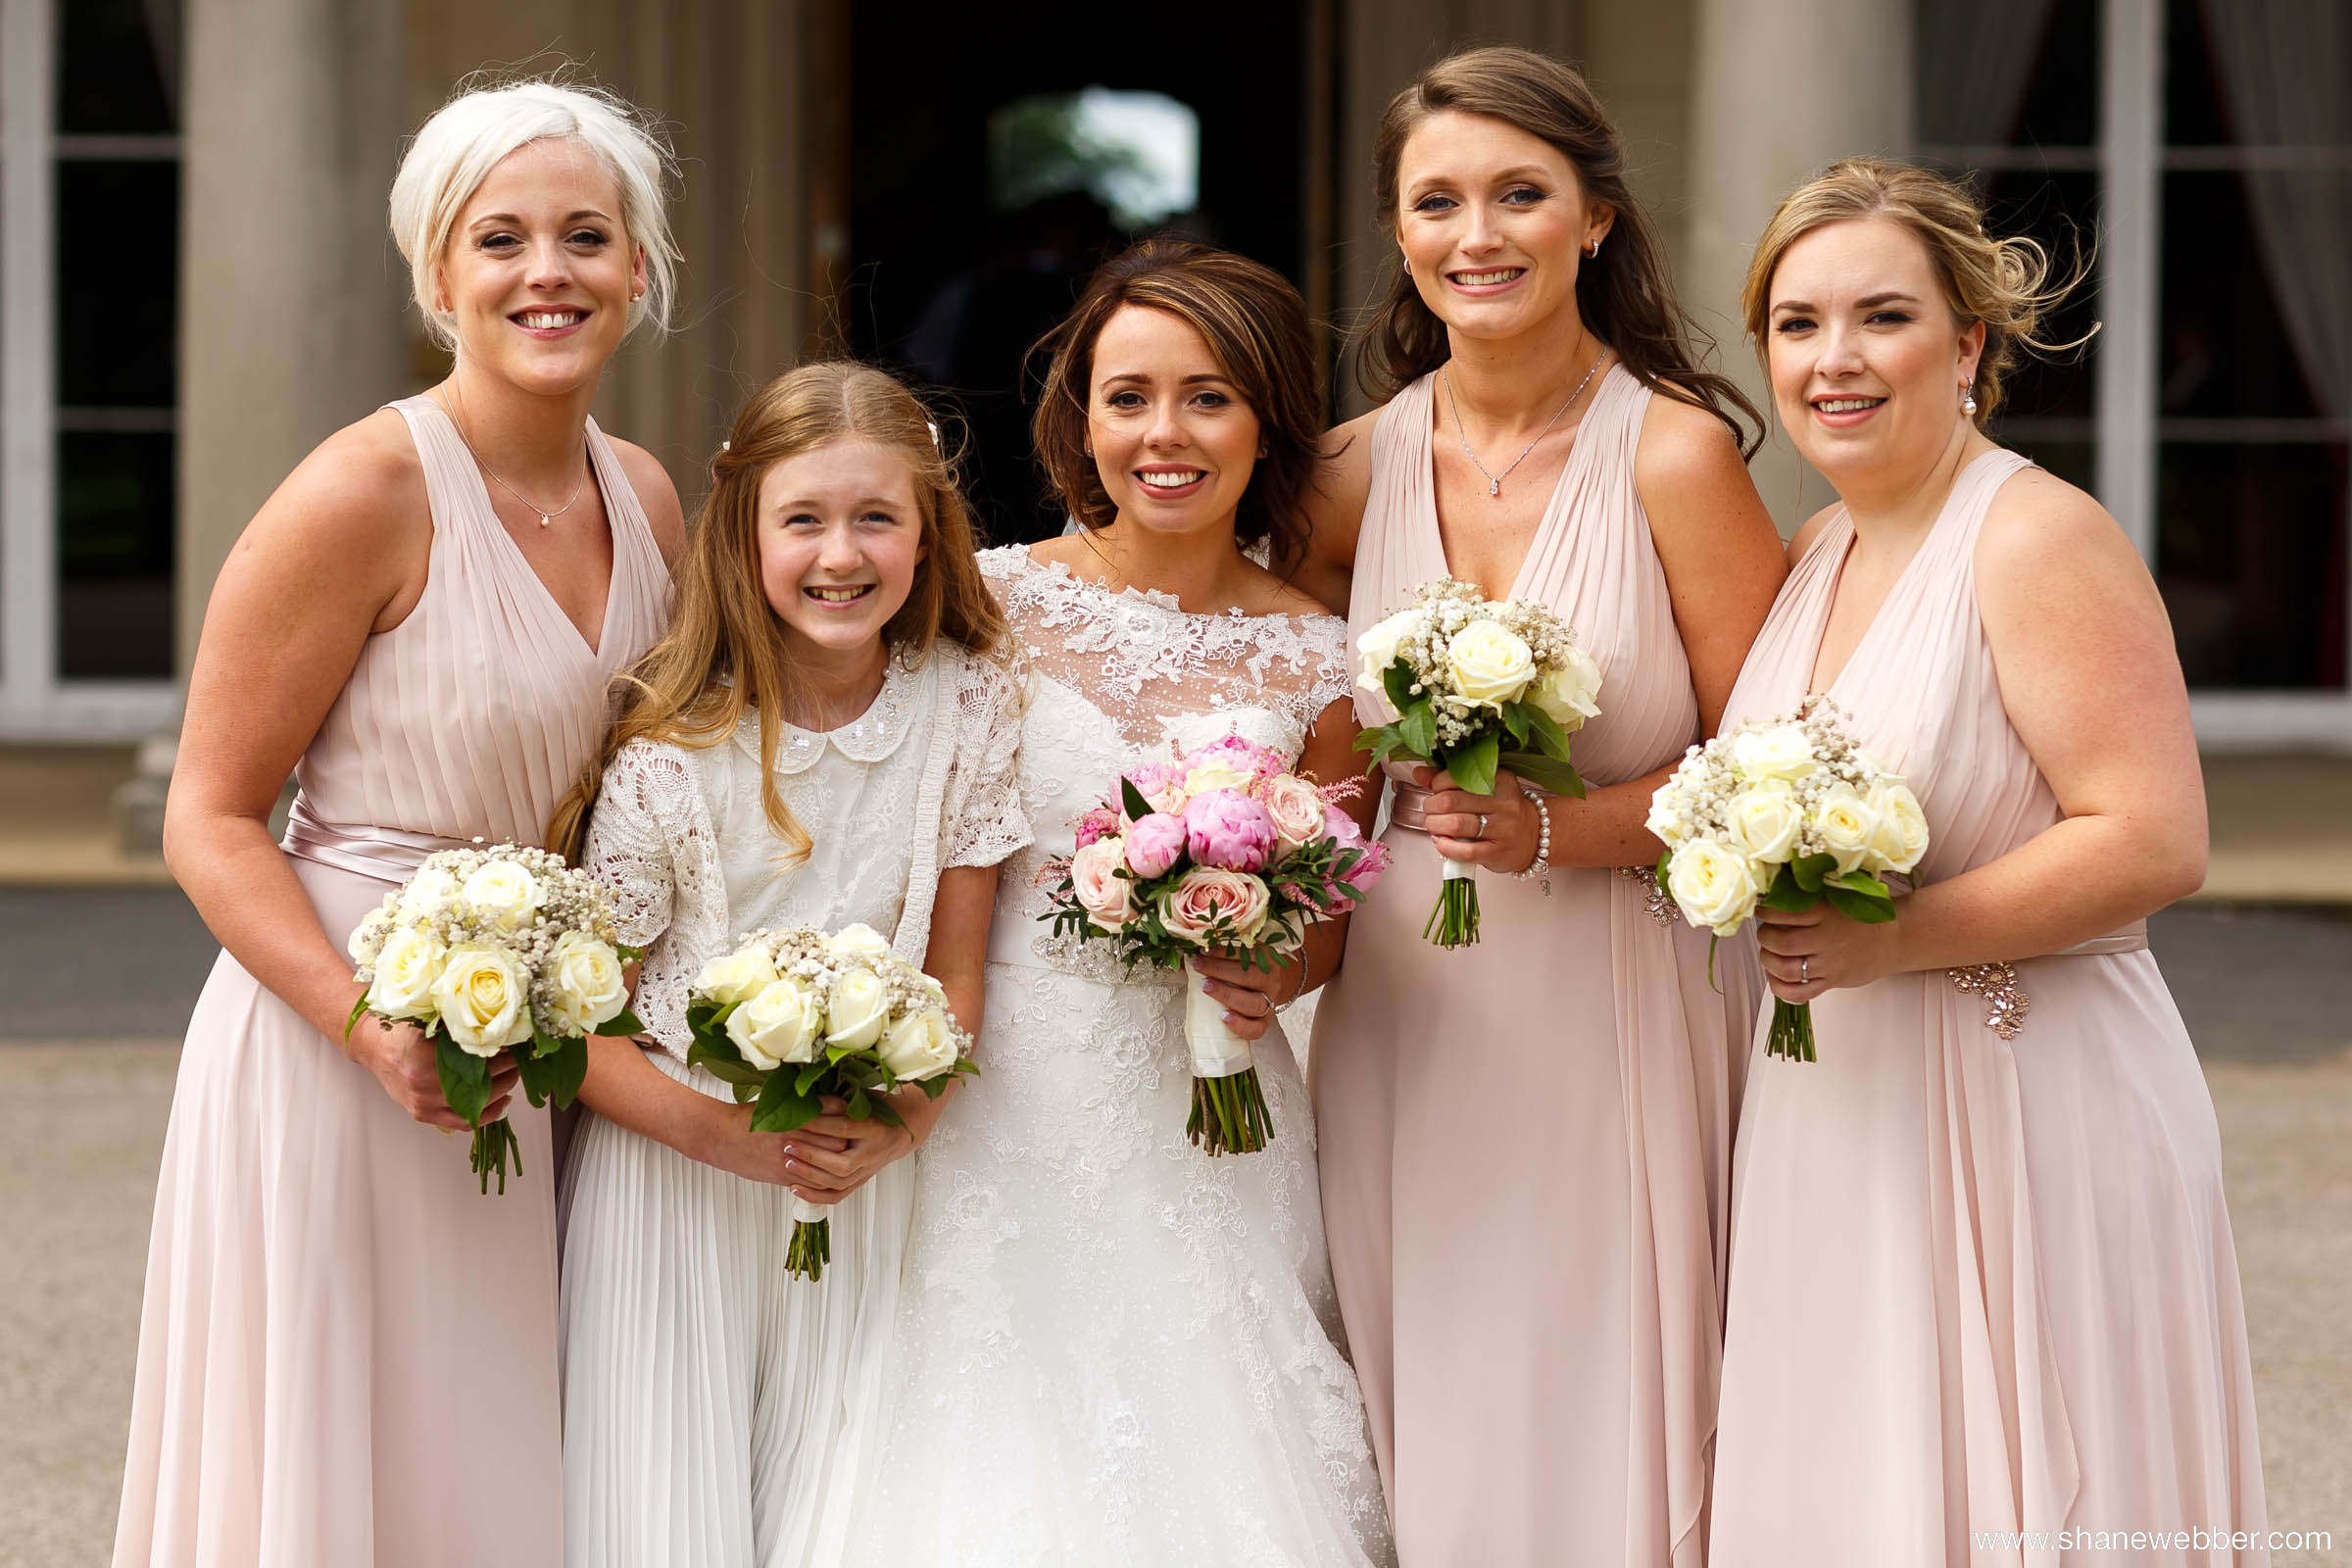 Bridesmaids wearing elegant nude pink dresses